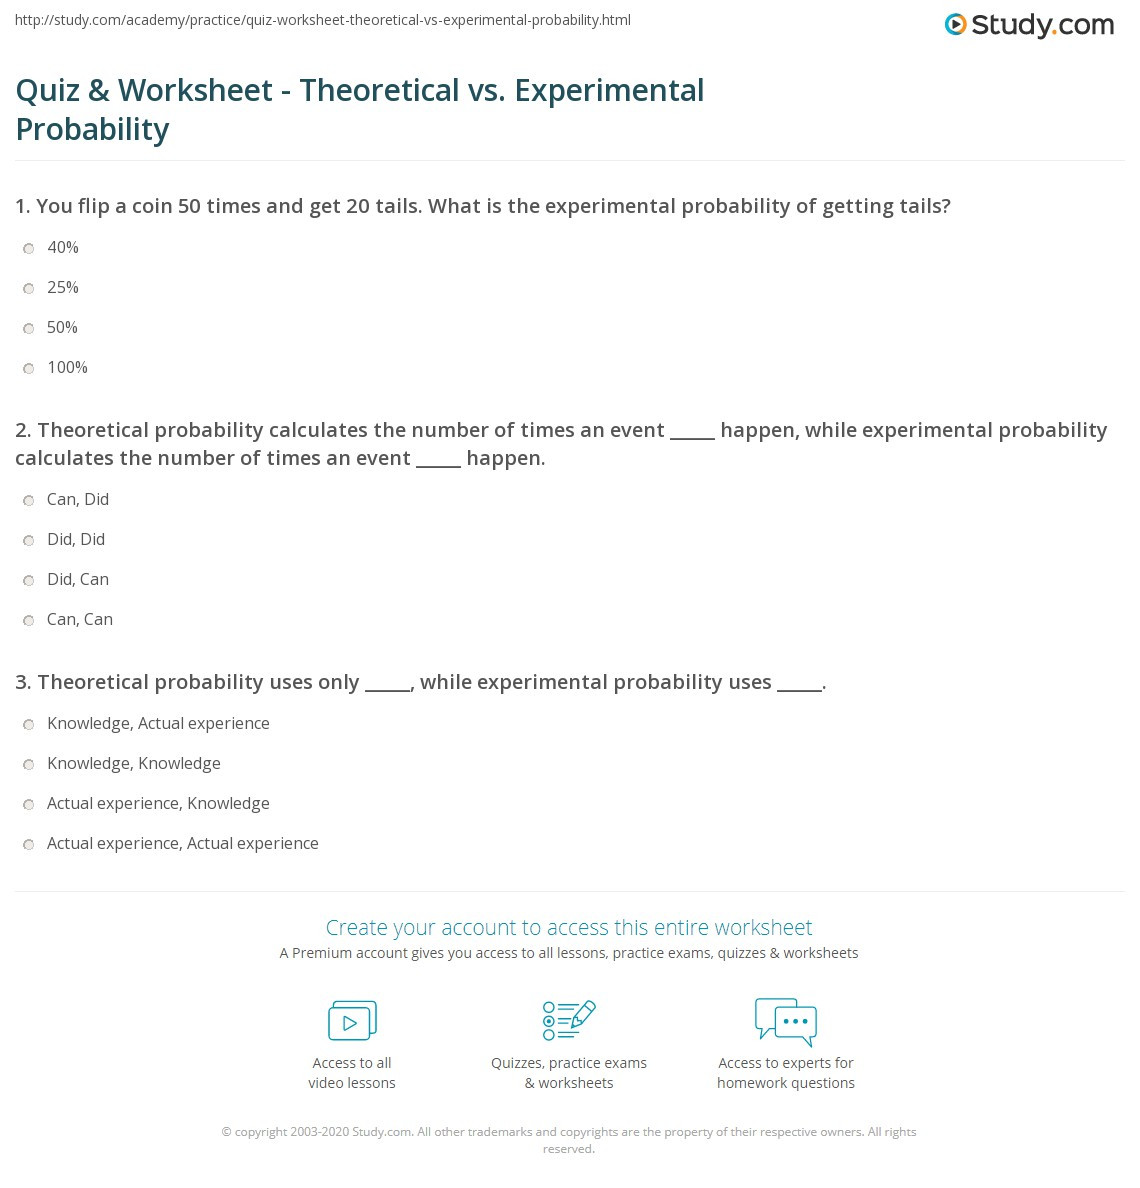 Probability Worksheet 7th Grade Quiz & Worksheet theoretical Vs Experimental Probability